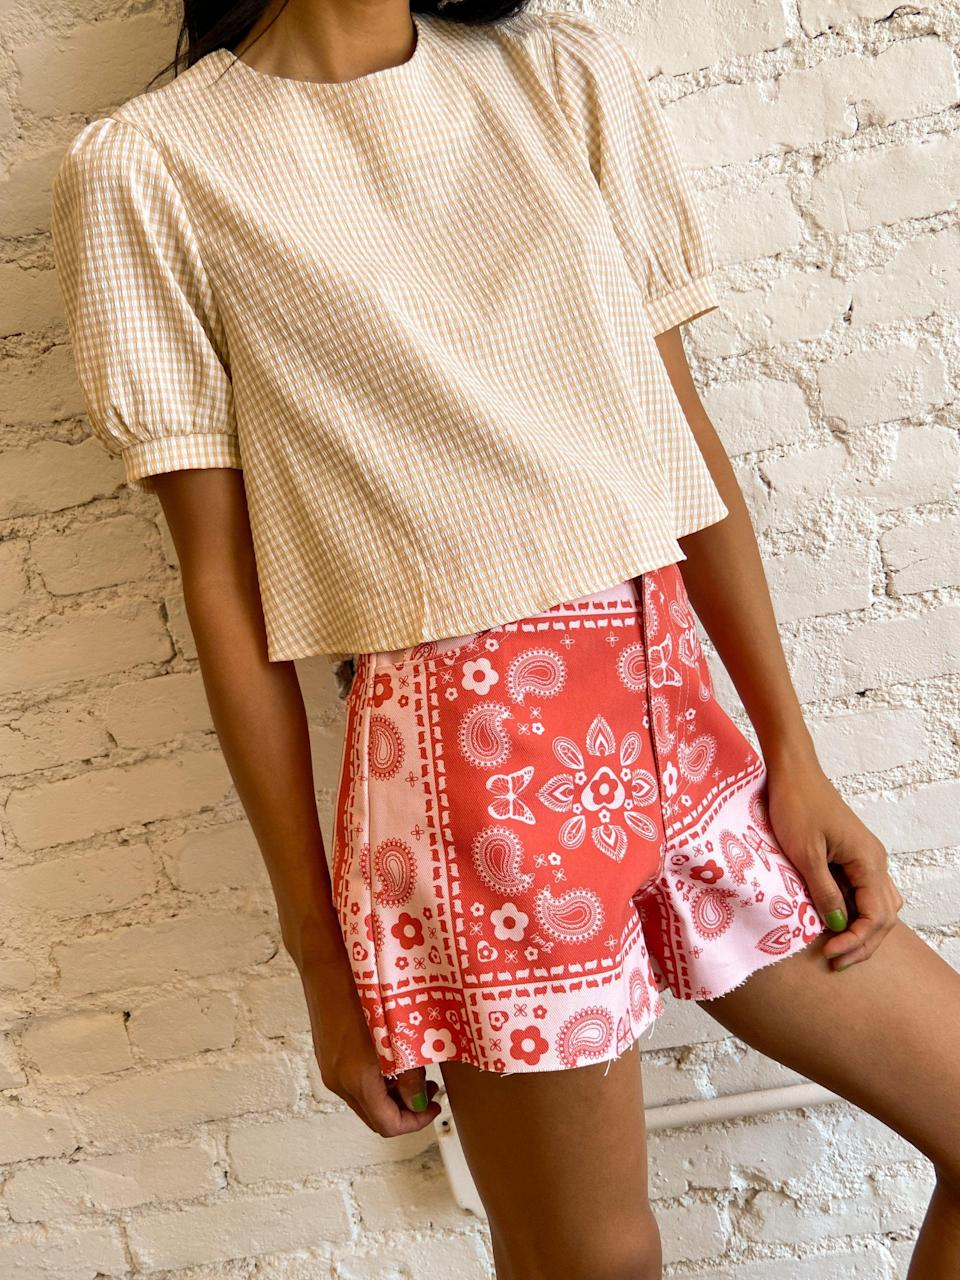 """<br><br><strong>Lisa Says Gah</strong> Blanca Top, Tuscany Gingham, $, available at <a href=""""https://go.skimresources.com/?id=30283X879131&url=https%3A%2F%2Flisasaysgah.com%2Fcollections%2F30-off-tops%2Fproducts%2Fblanca-top-tuscany-gingham"""" rel=""""nofollow noopener"""" target=""""_blank"""" data-ylk=""""slk:Lisa Says Gah"""" class=""""link rapid-noclick-resp"""">Lisa Says Gah</a>"""